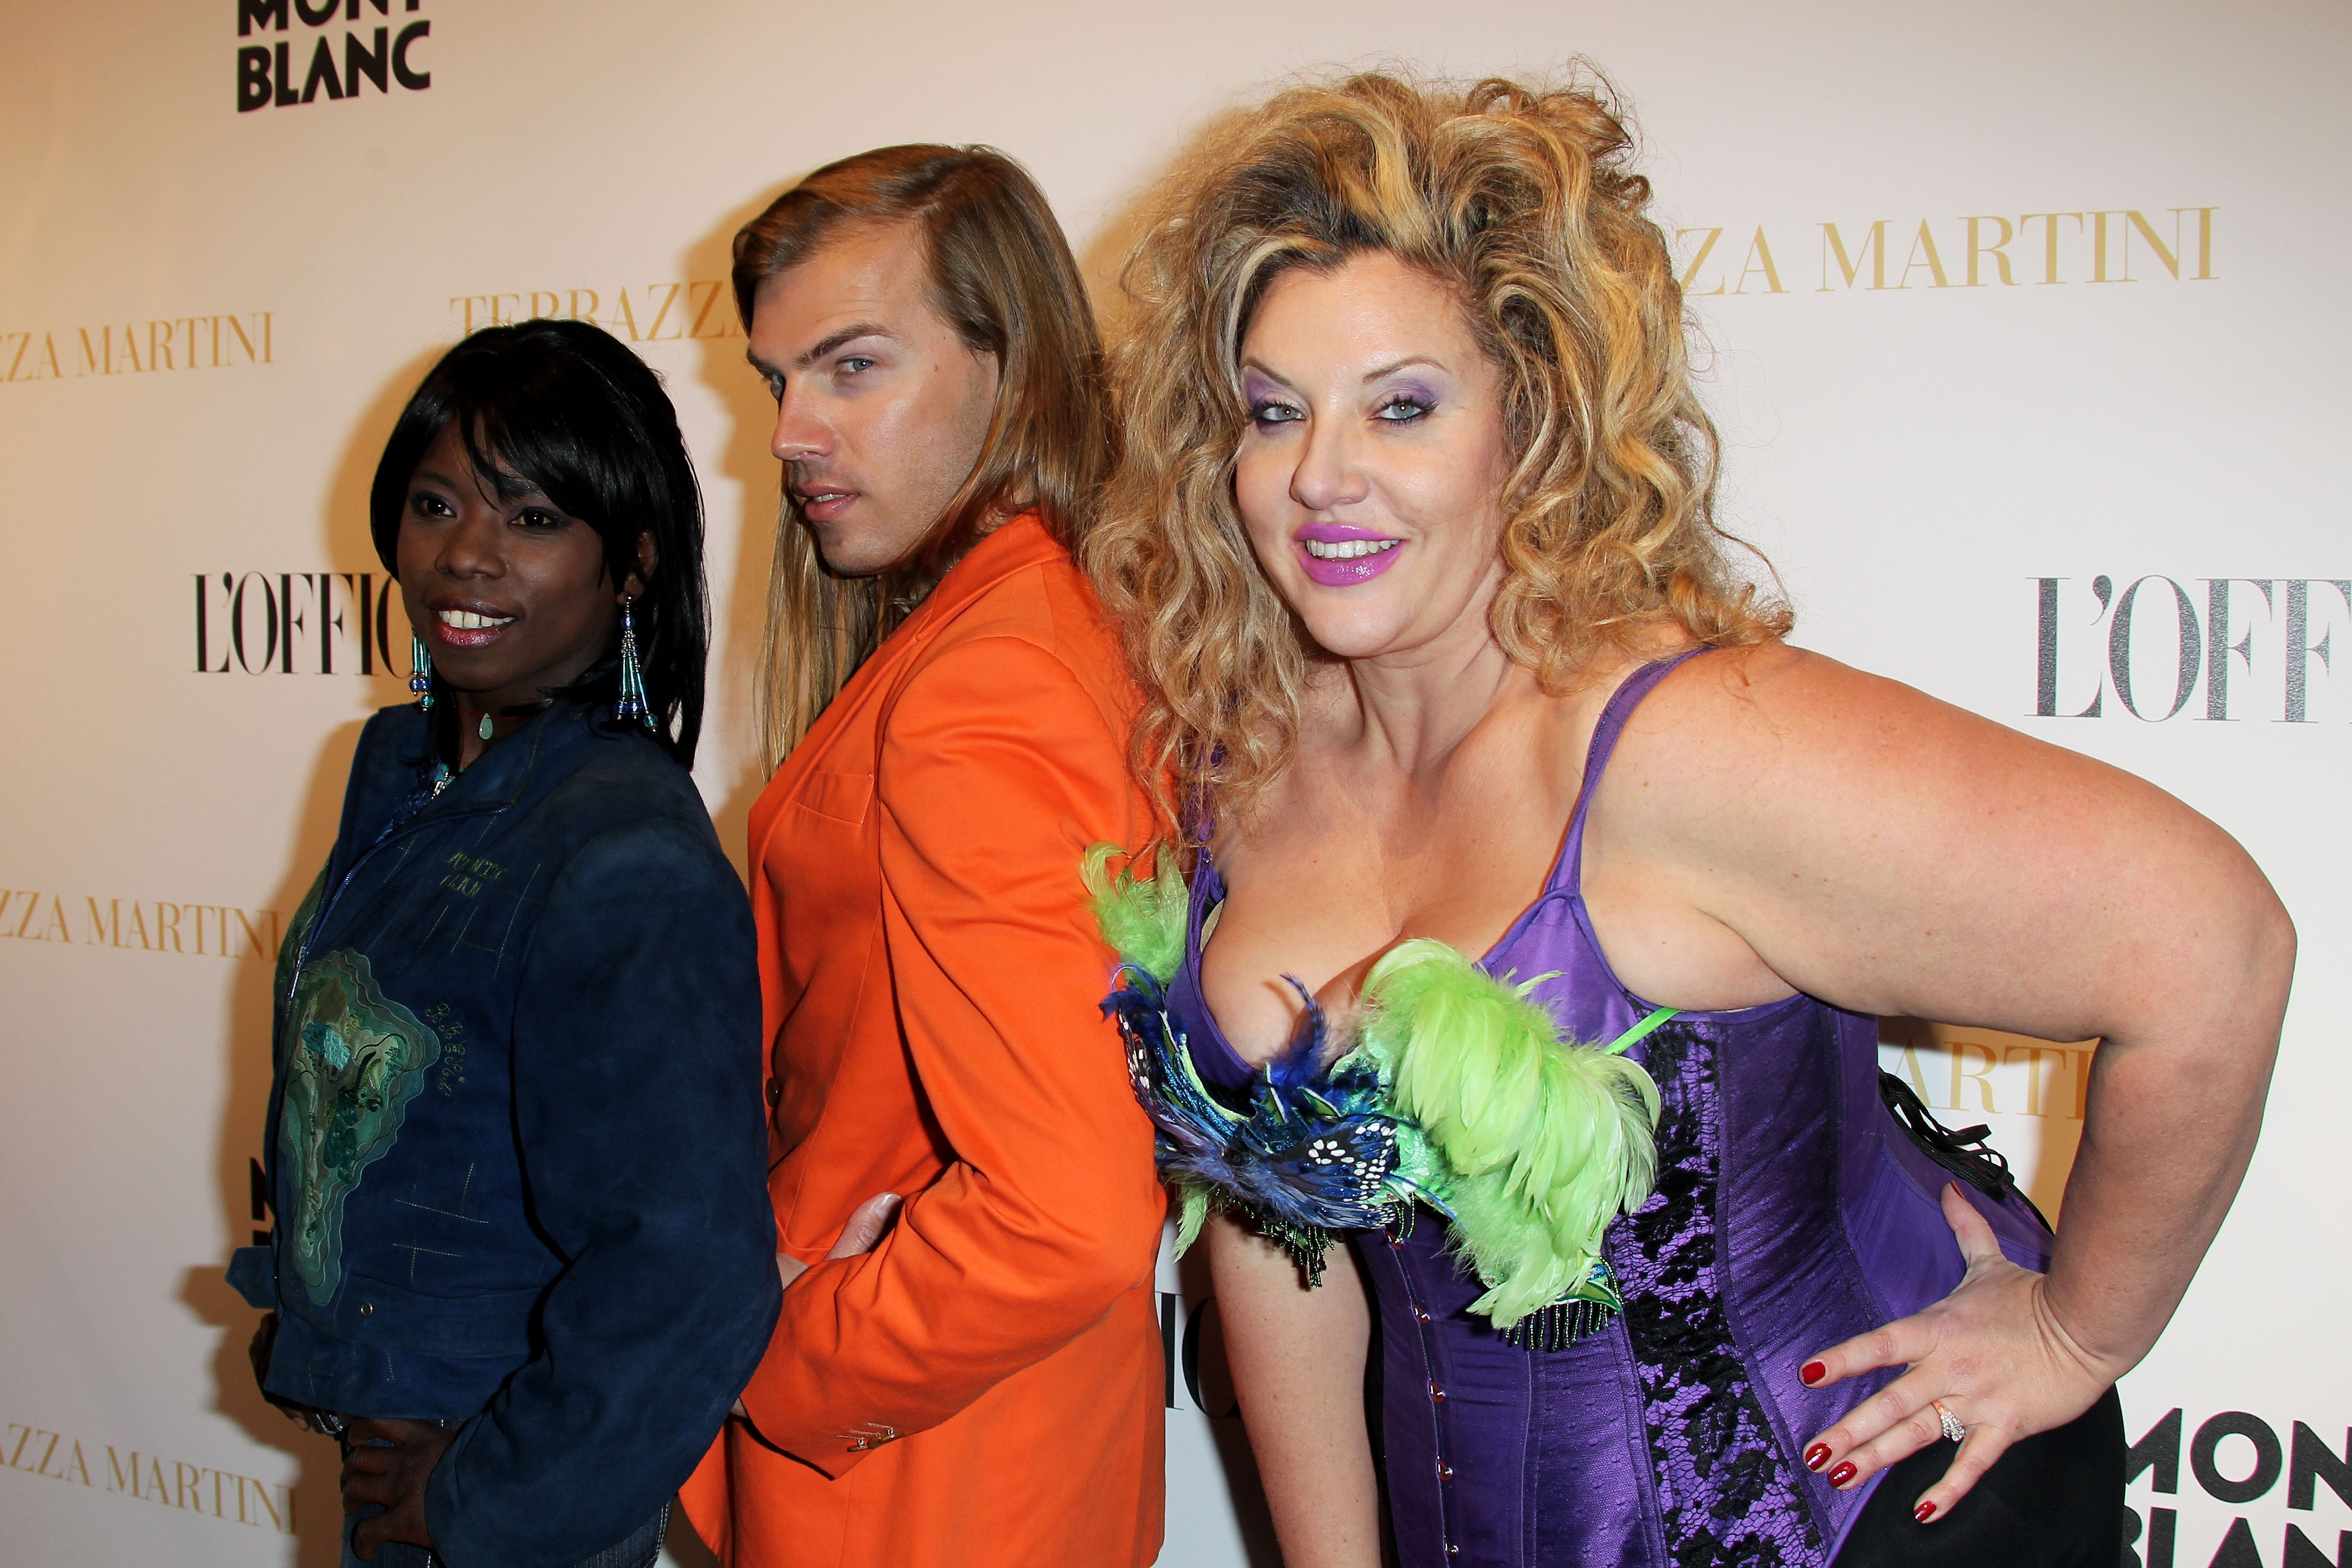 Surya Bonaly, Designer Christophe Guillarme and Model Velvet d'Amour at the Terraza Martini during the 63rd Annual International Cannes Film Festival on May 14, 2010 | Photo: Getty Images